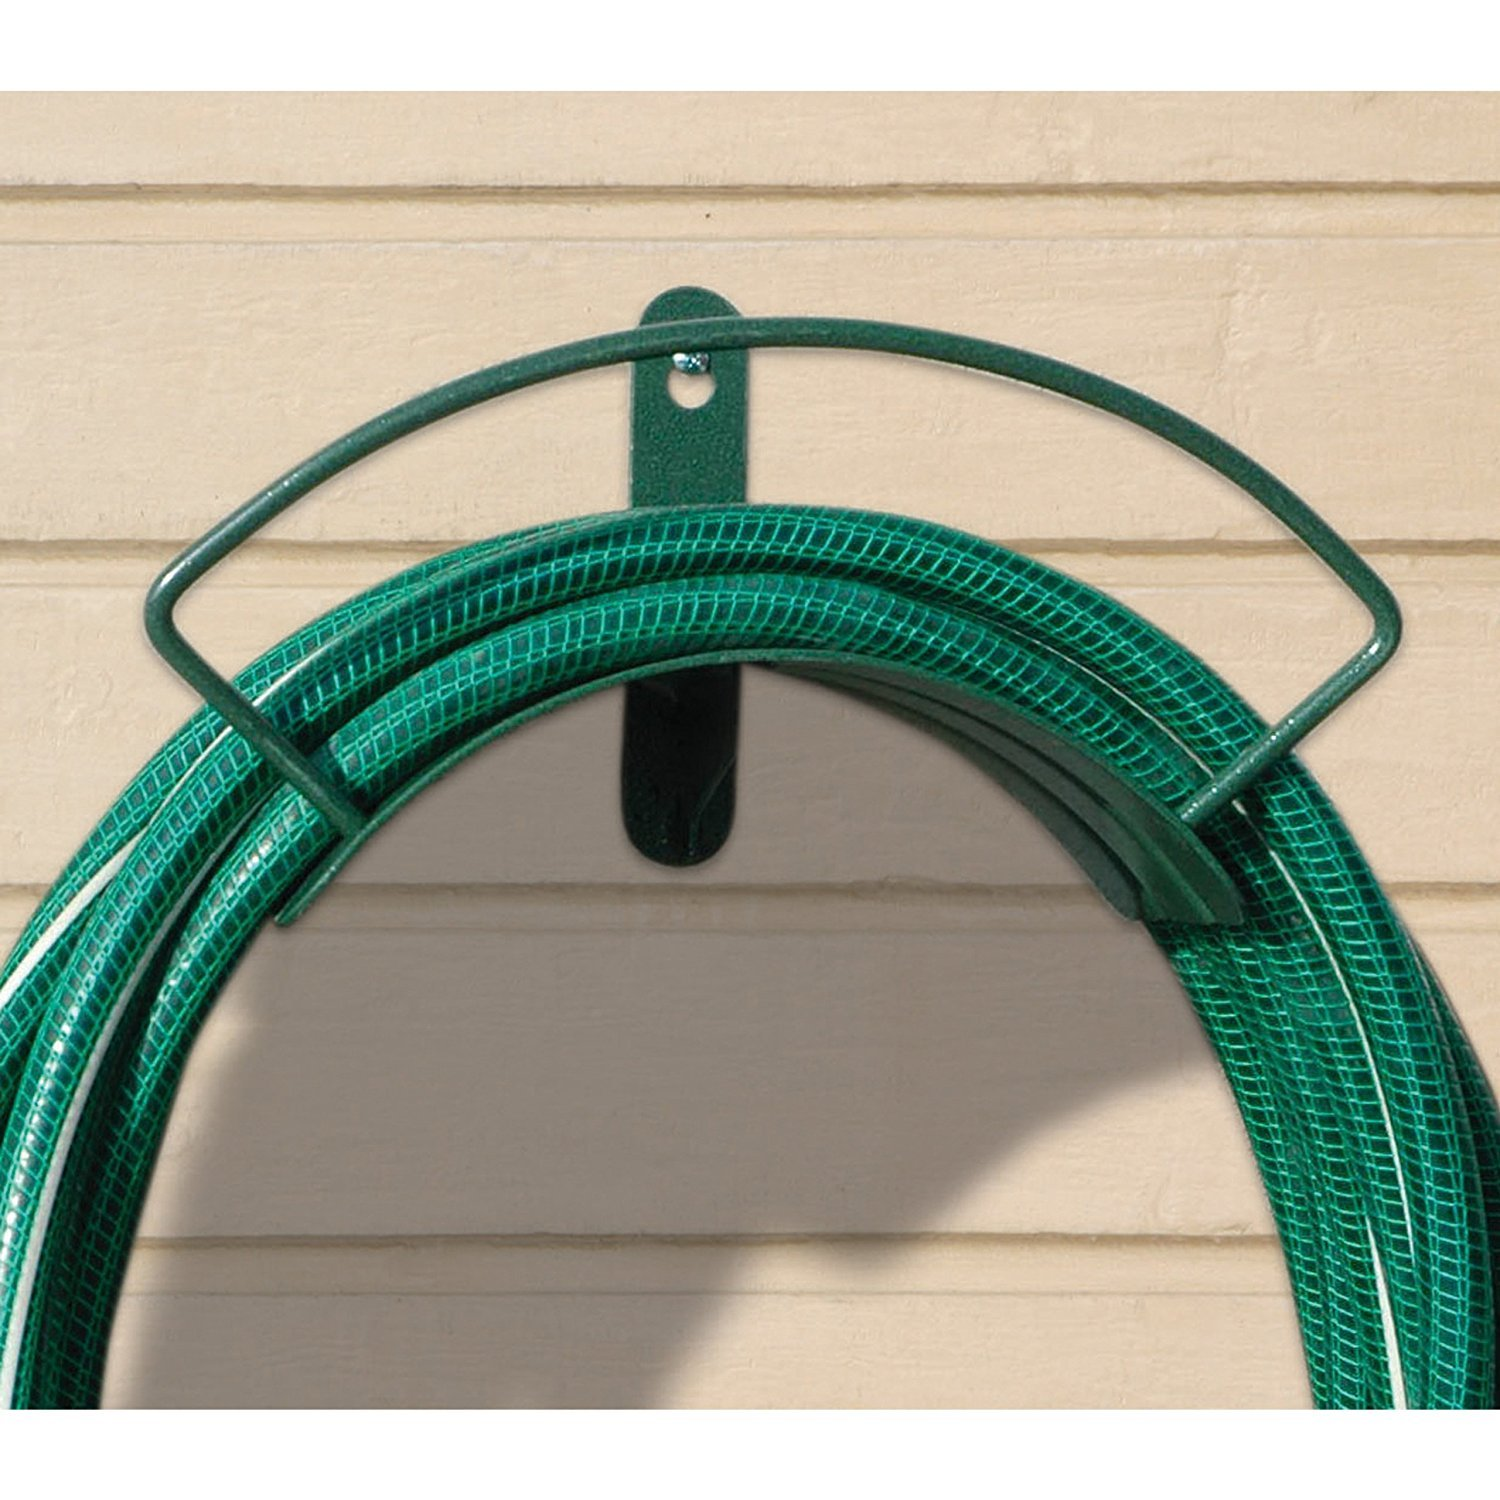 Rocky Mountain Goods Deluxe Metal Hose Hanger - Most solid wall mounted hose hanger on the market - Rust proof wrought iron - Fits 100' of hose